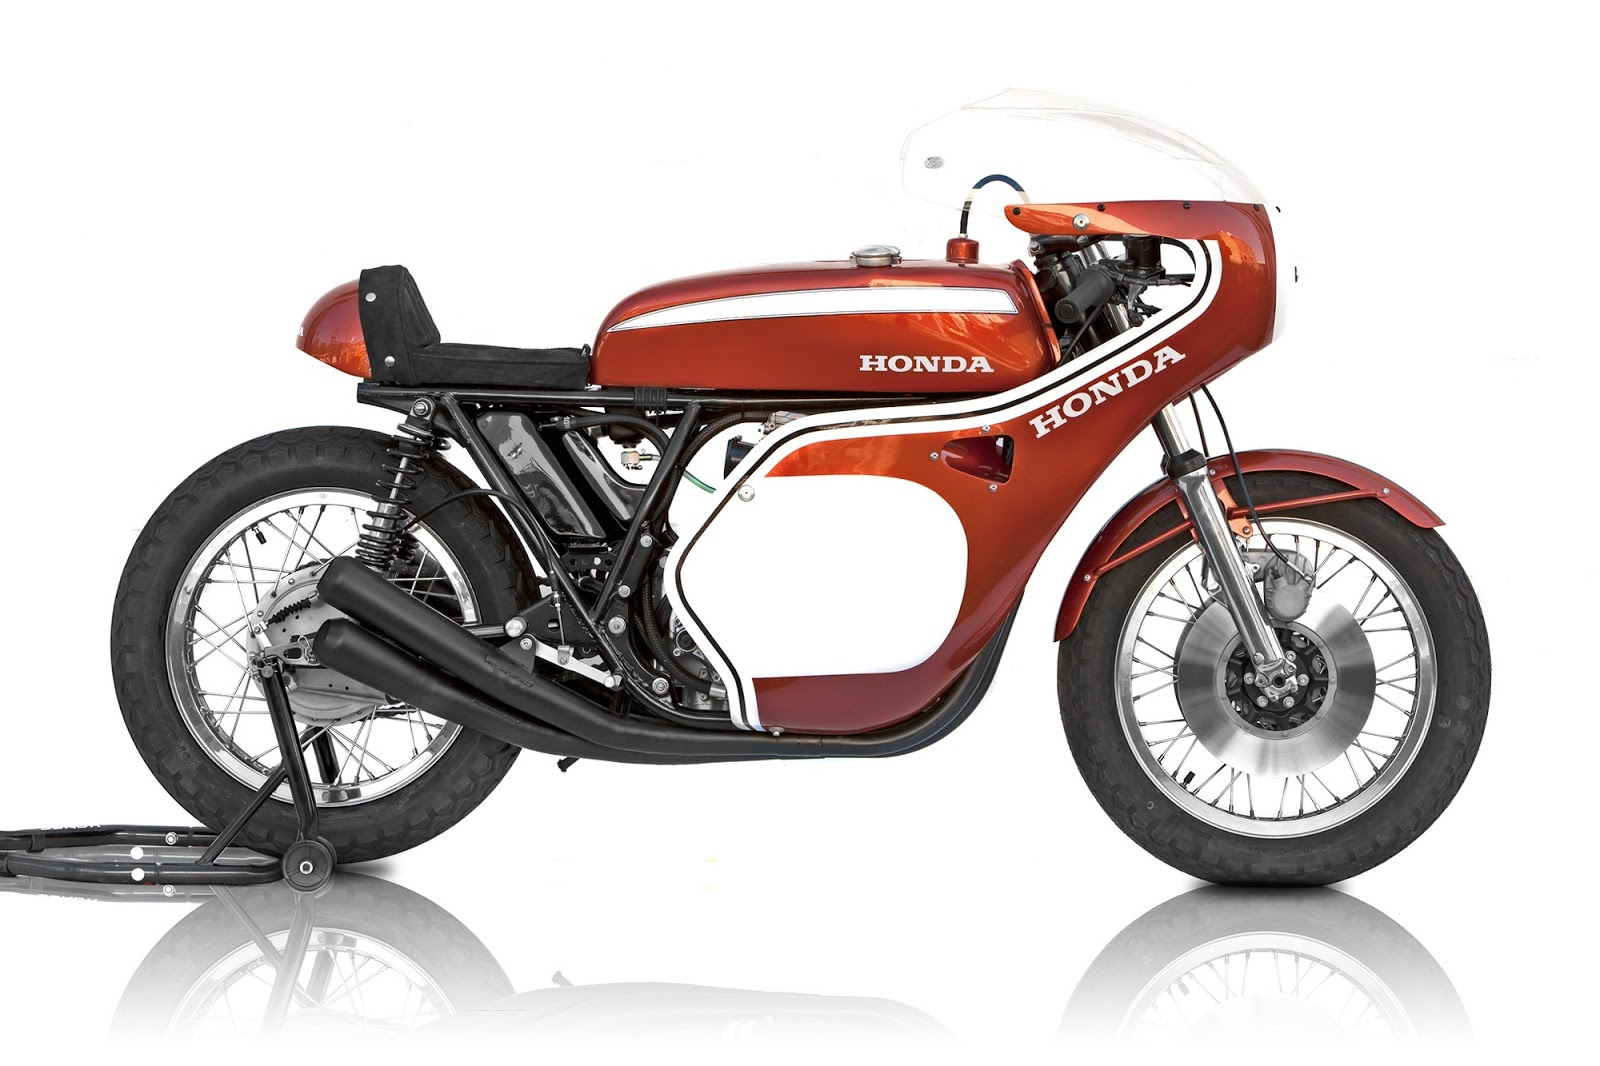 thecaferacercult honda cb750 racing. Black Bedroom Furniture Sets. Home Design Ideas